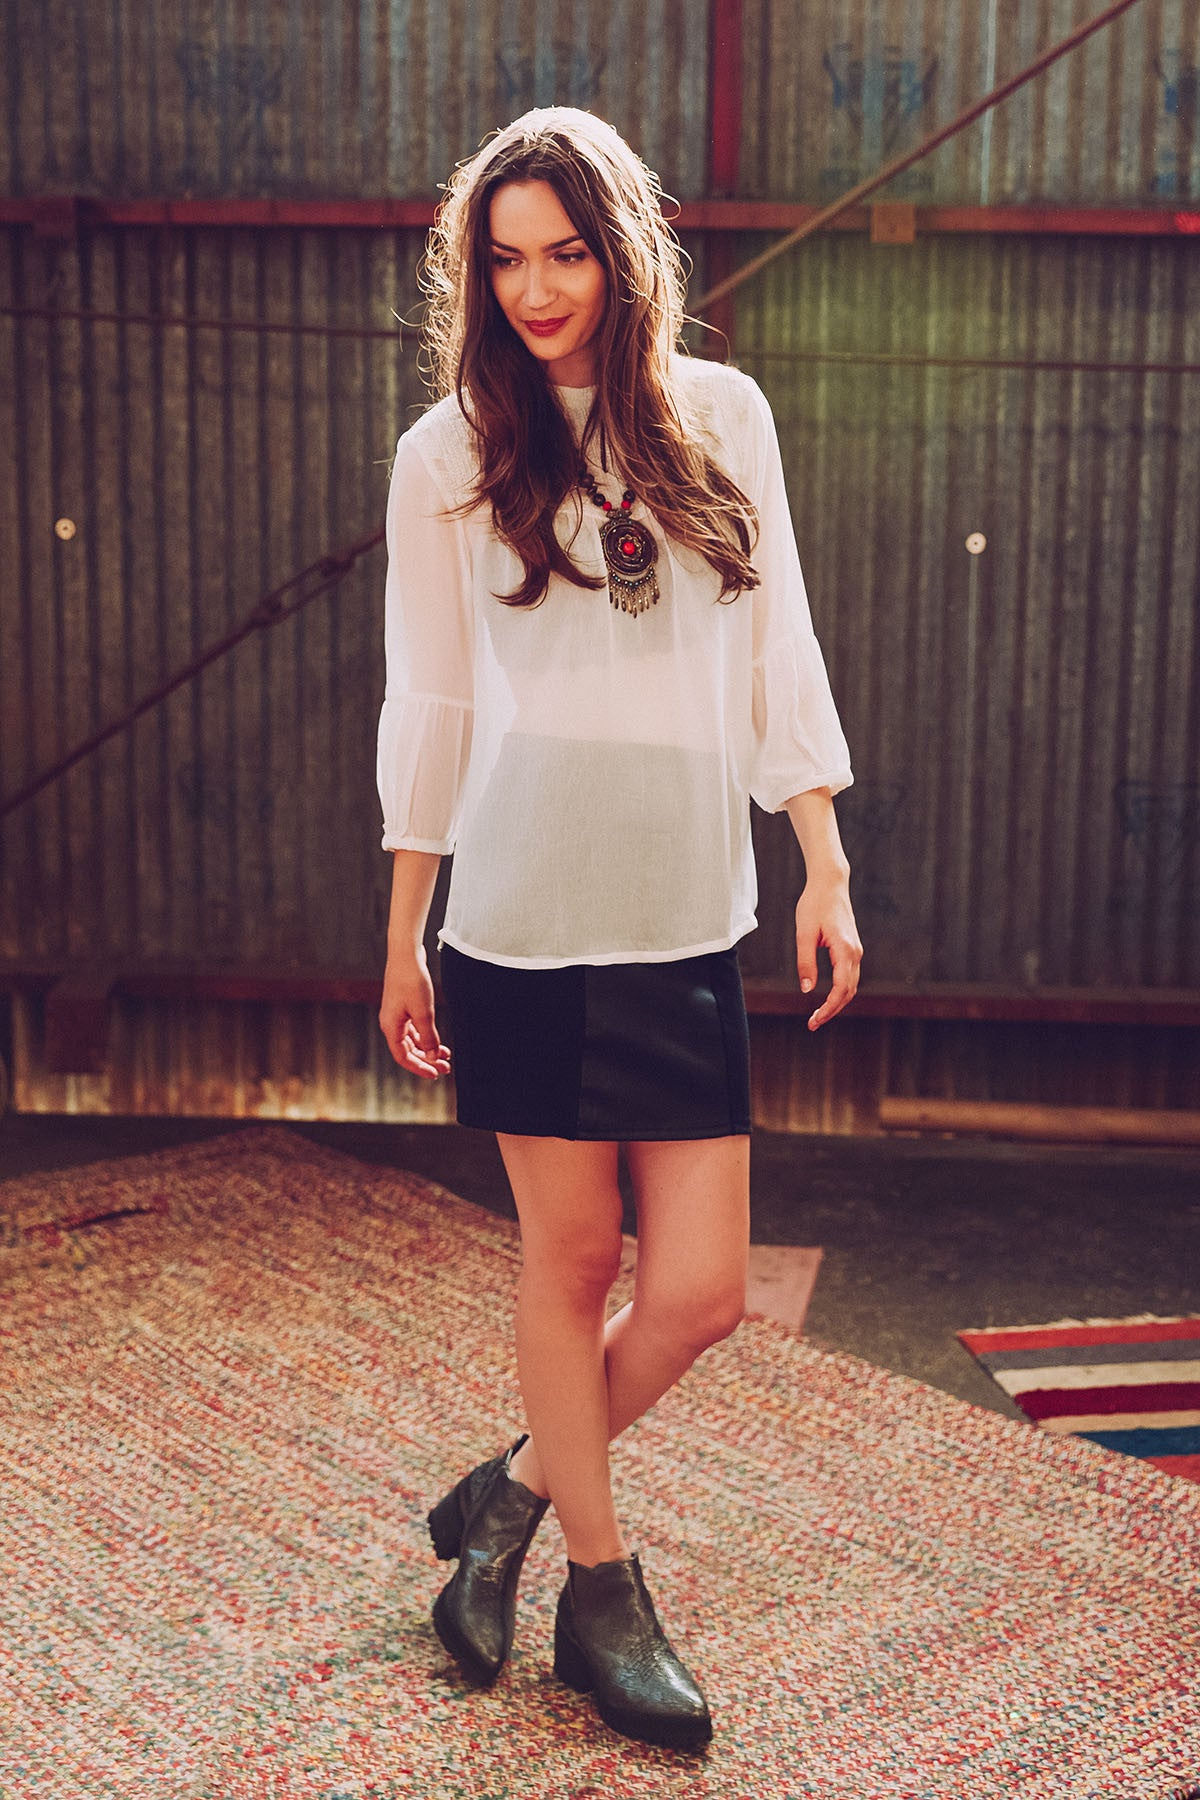 Eirene Embroidered White Blouse by Peppercorn